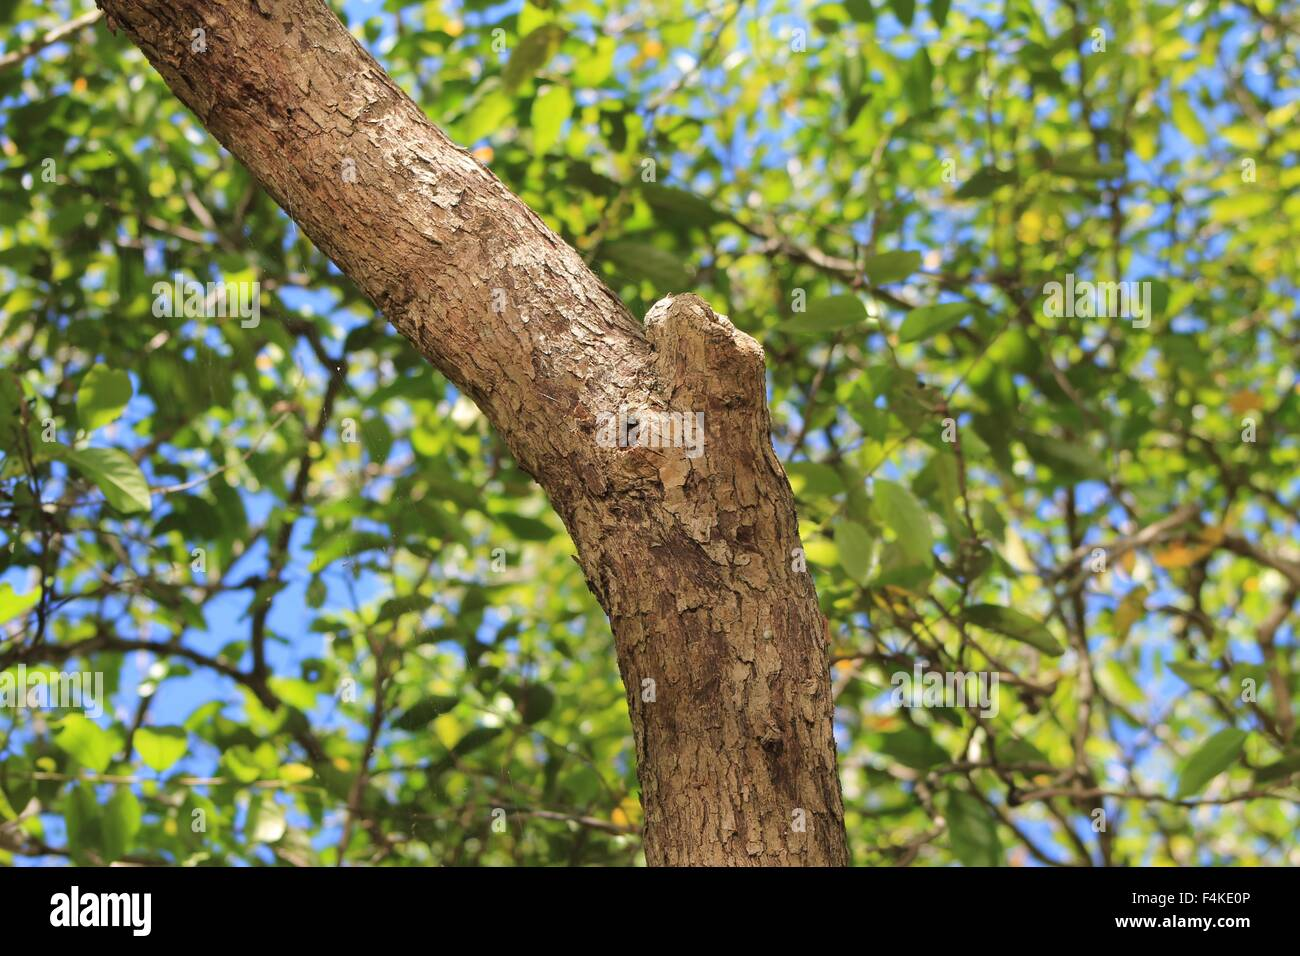 Tree trunk, bark, tree branches, leaves, sunlight - Stock Image